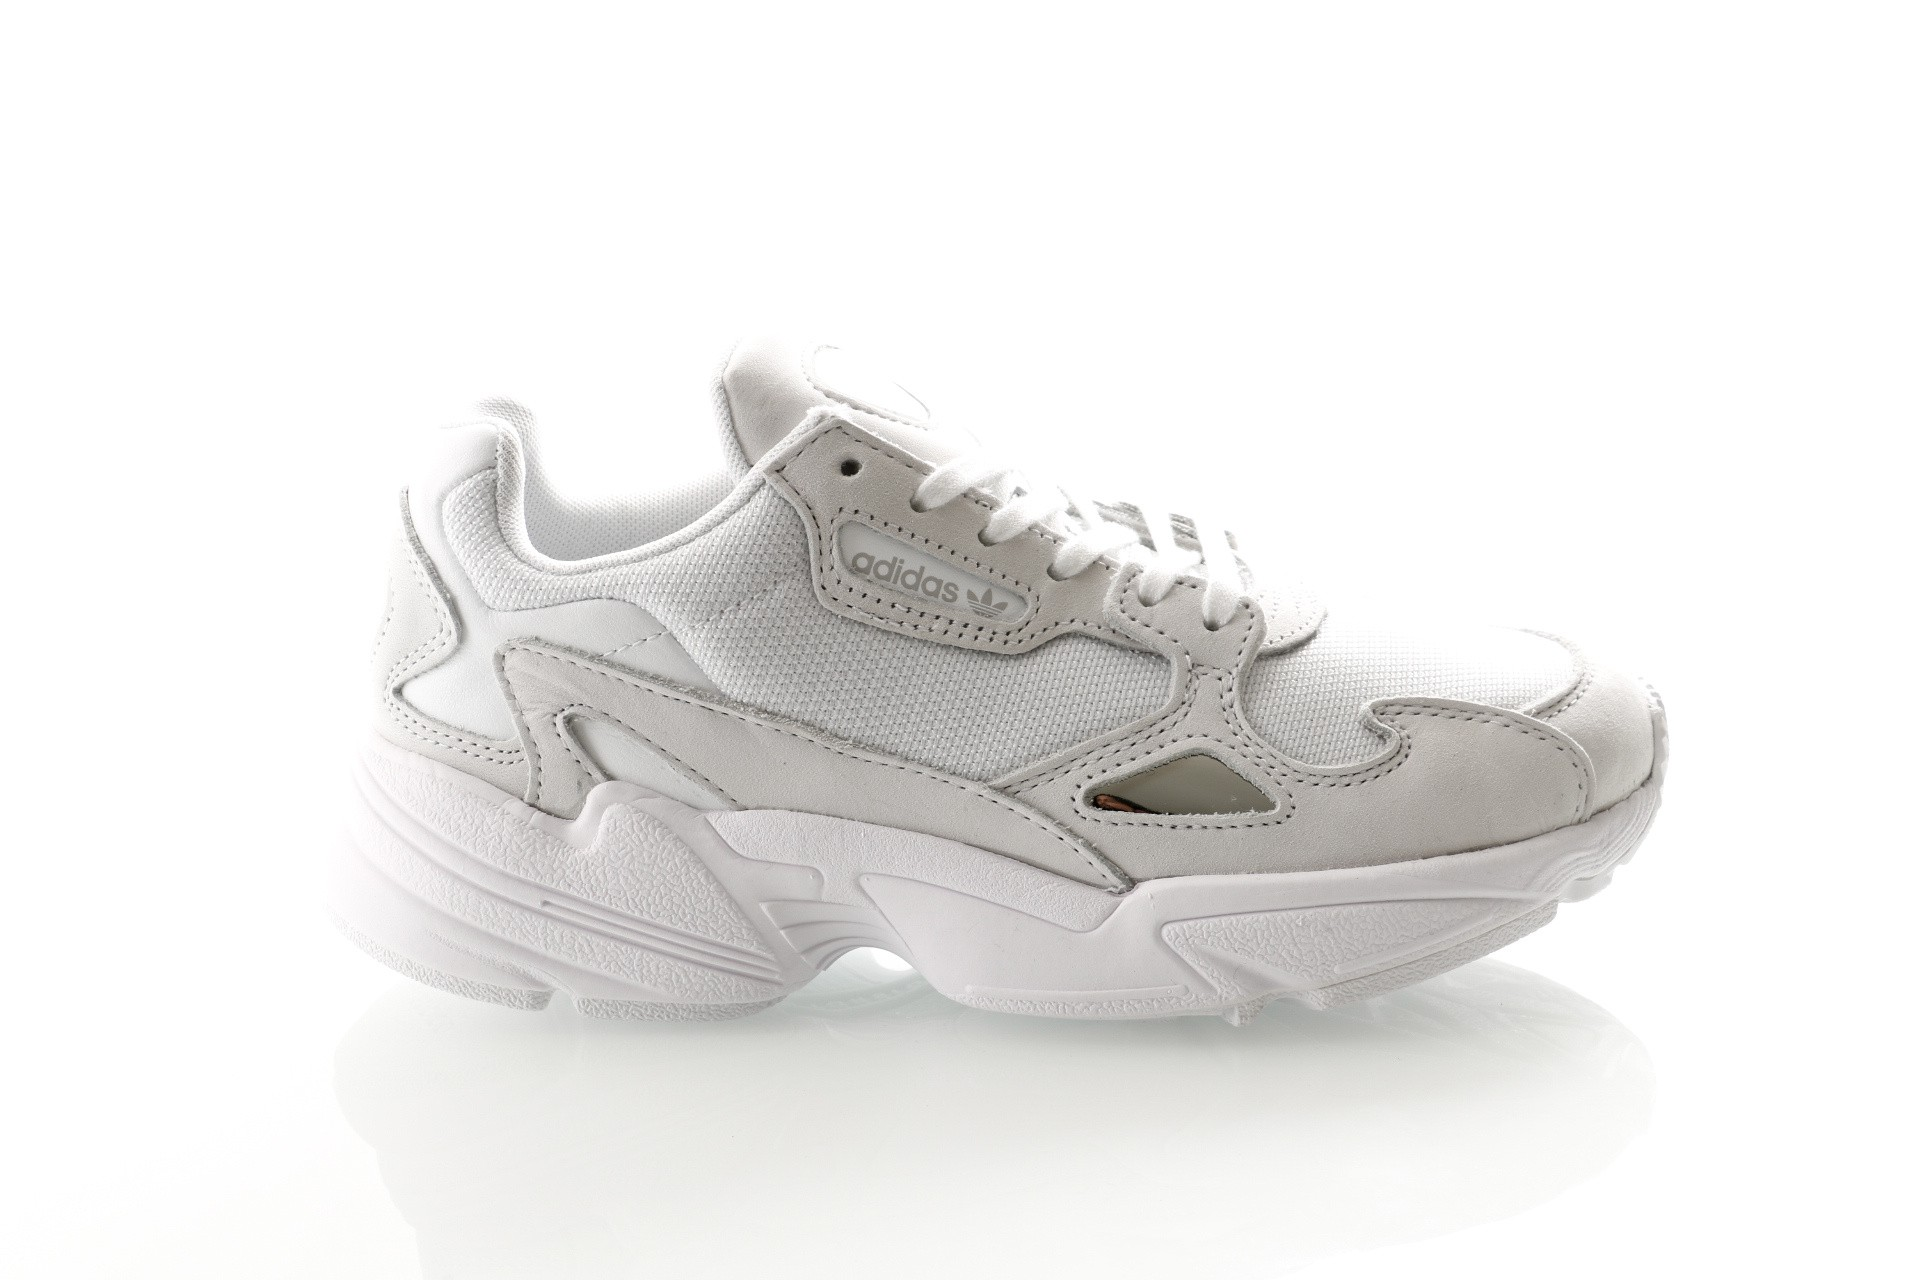 newest 6a3c7 83f4d Afbeelding van Adidas Falcon W B28128 Sneakers ftwr whiteftwr whitecrystal  white